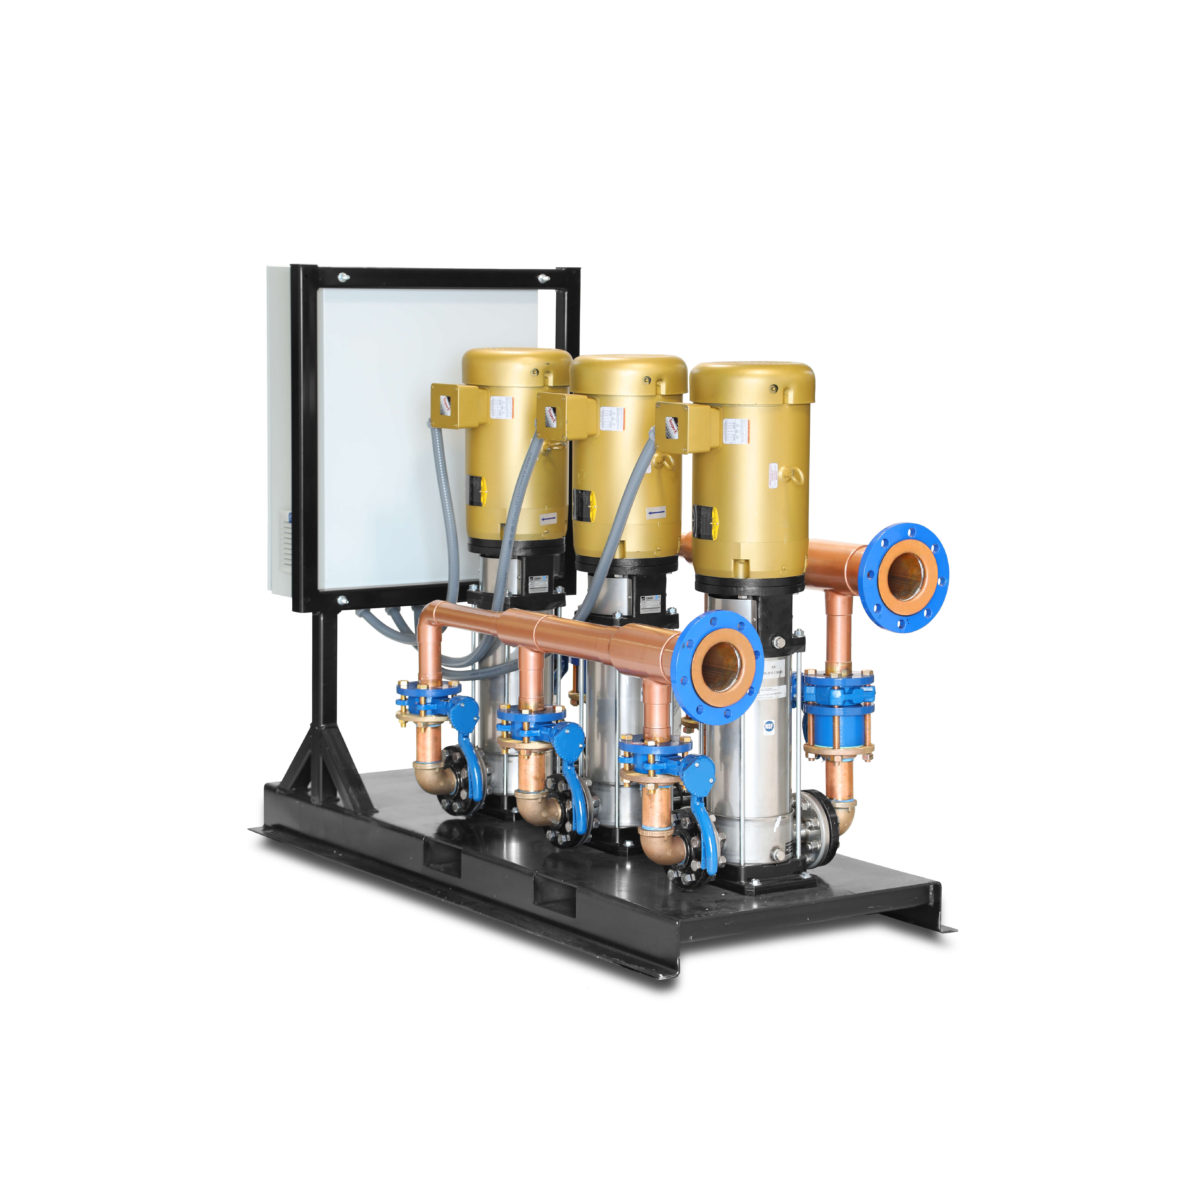 Water Pressure Booster System: Standard Options with Yaskawa iQ1000